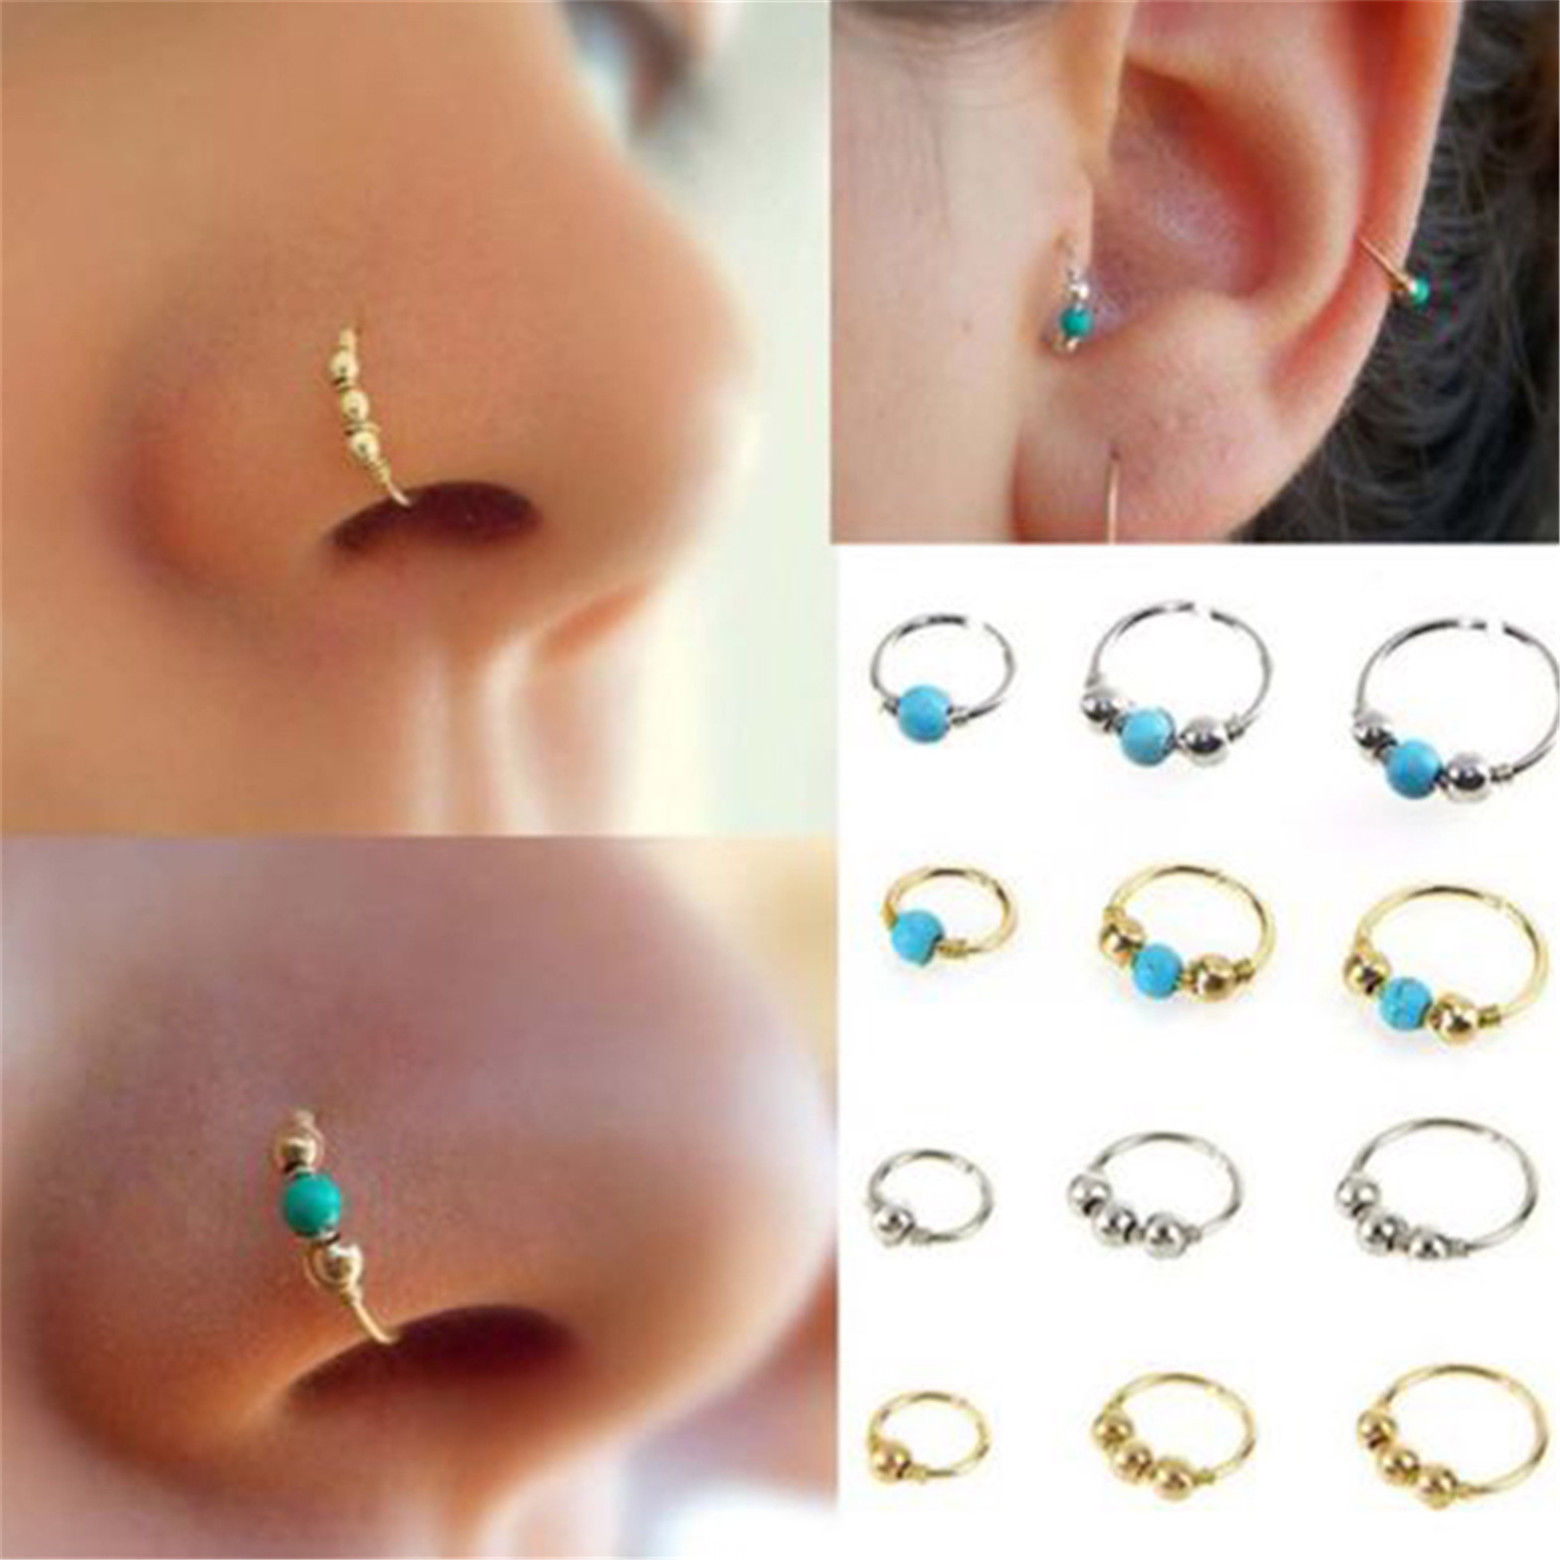 Subiceto 20G Nose Ring for Women 34 PCS Stainless Steel Hoop Stud L Shape Tragus Cartilage Helix Lip Septum Piercing 8-12mm